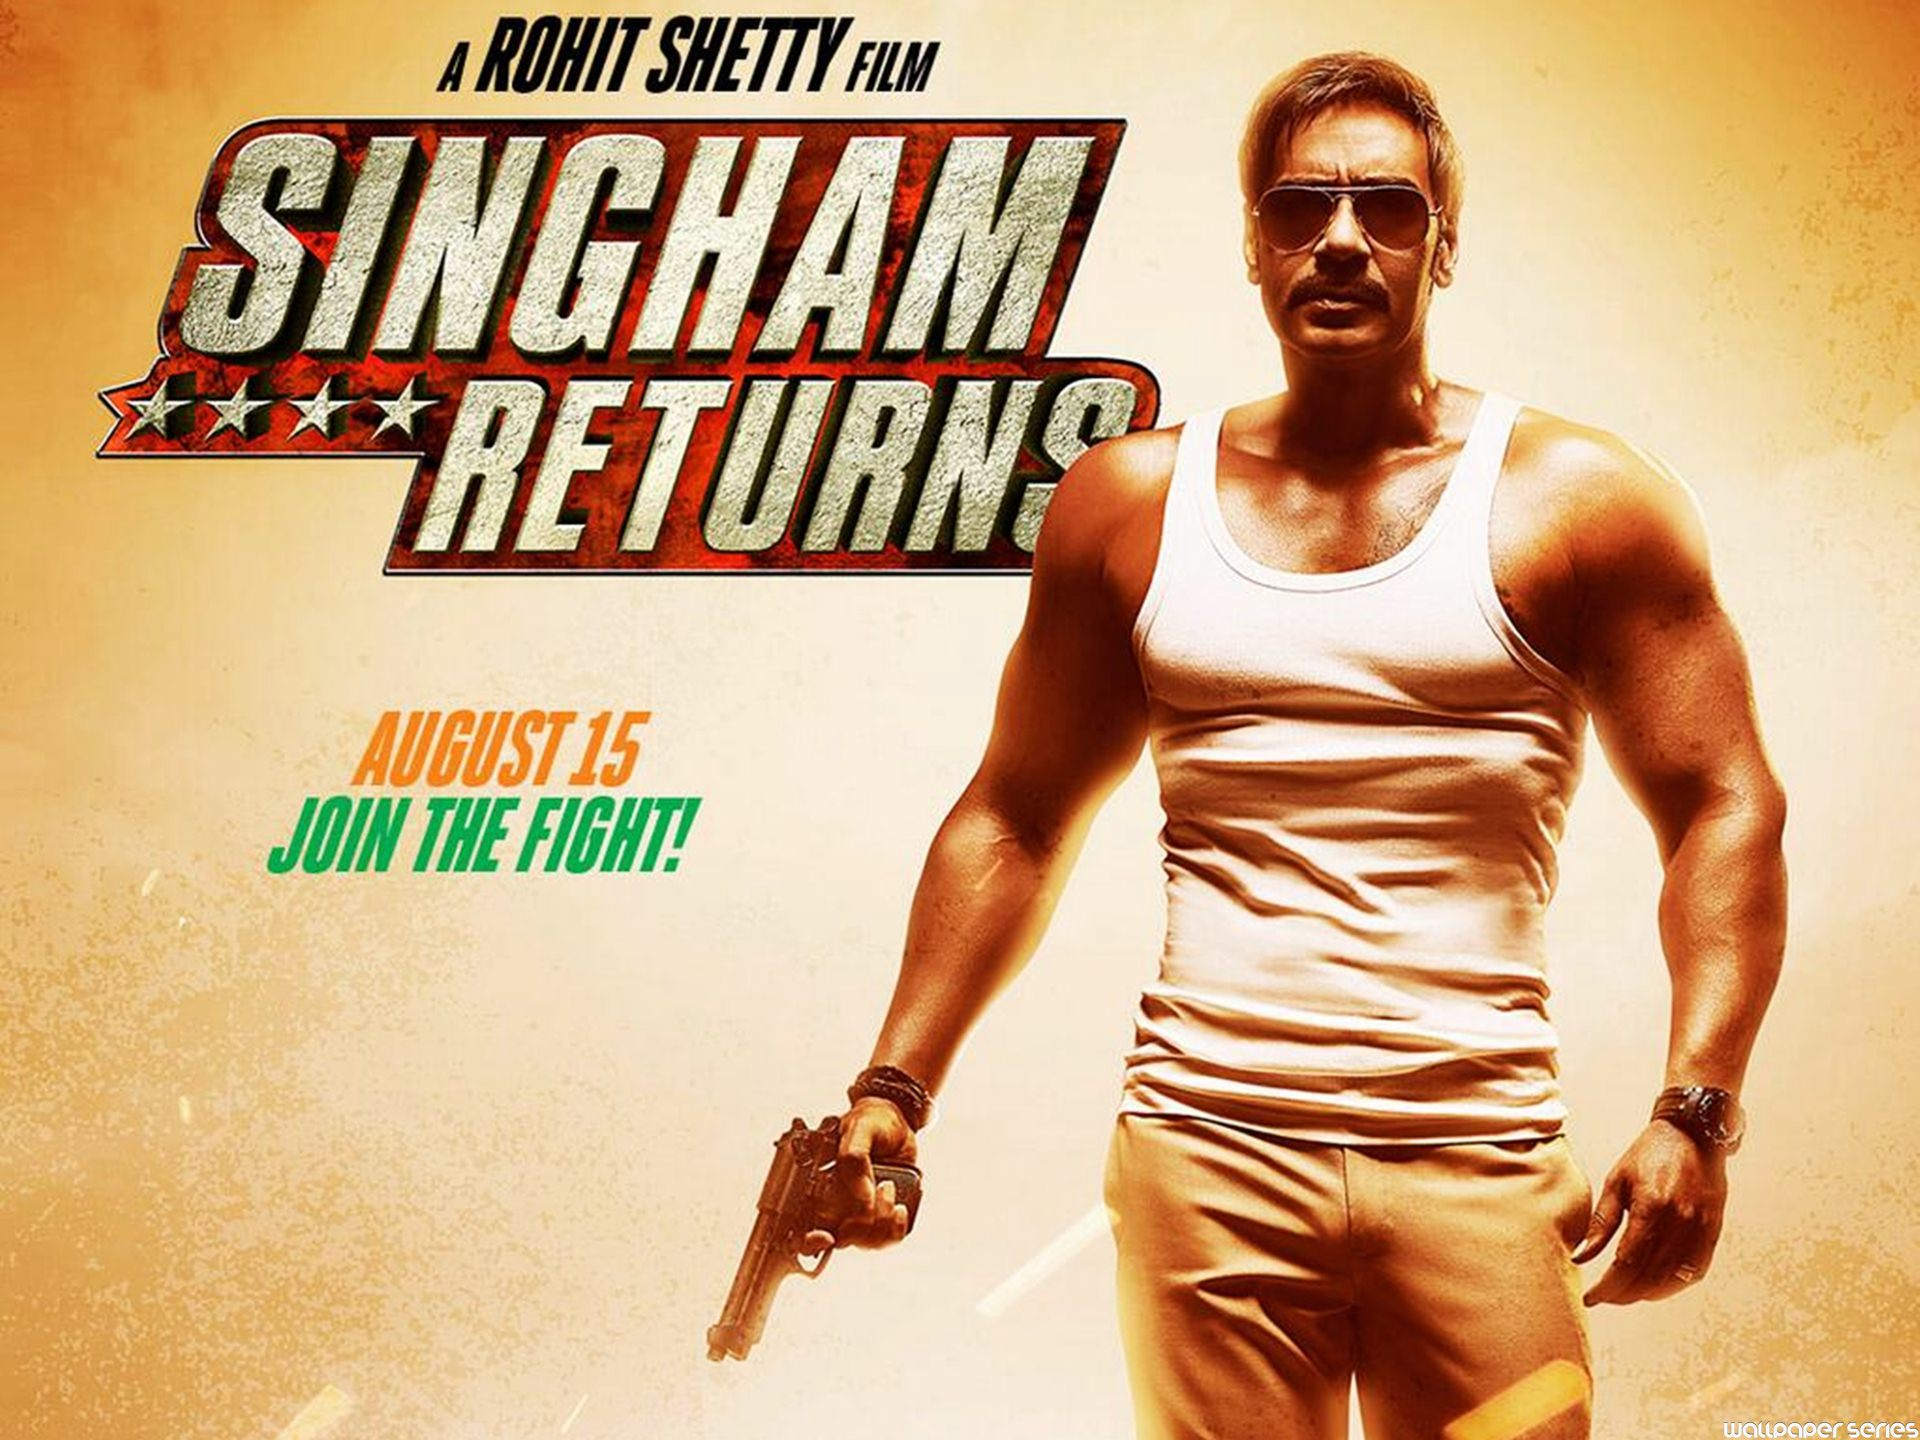 Singham Returns is Ajay Devgn's 4th highest grossing movie